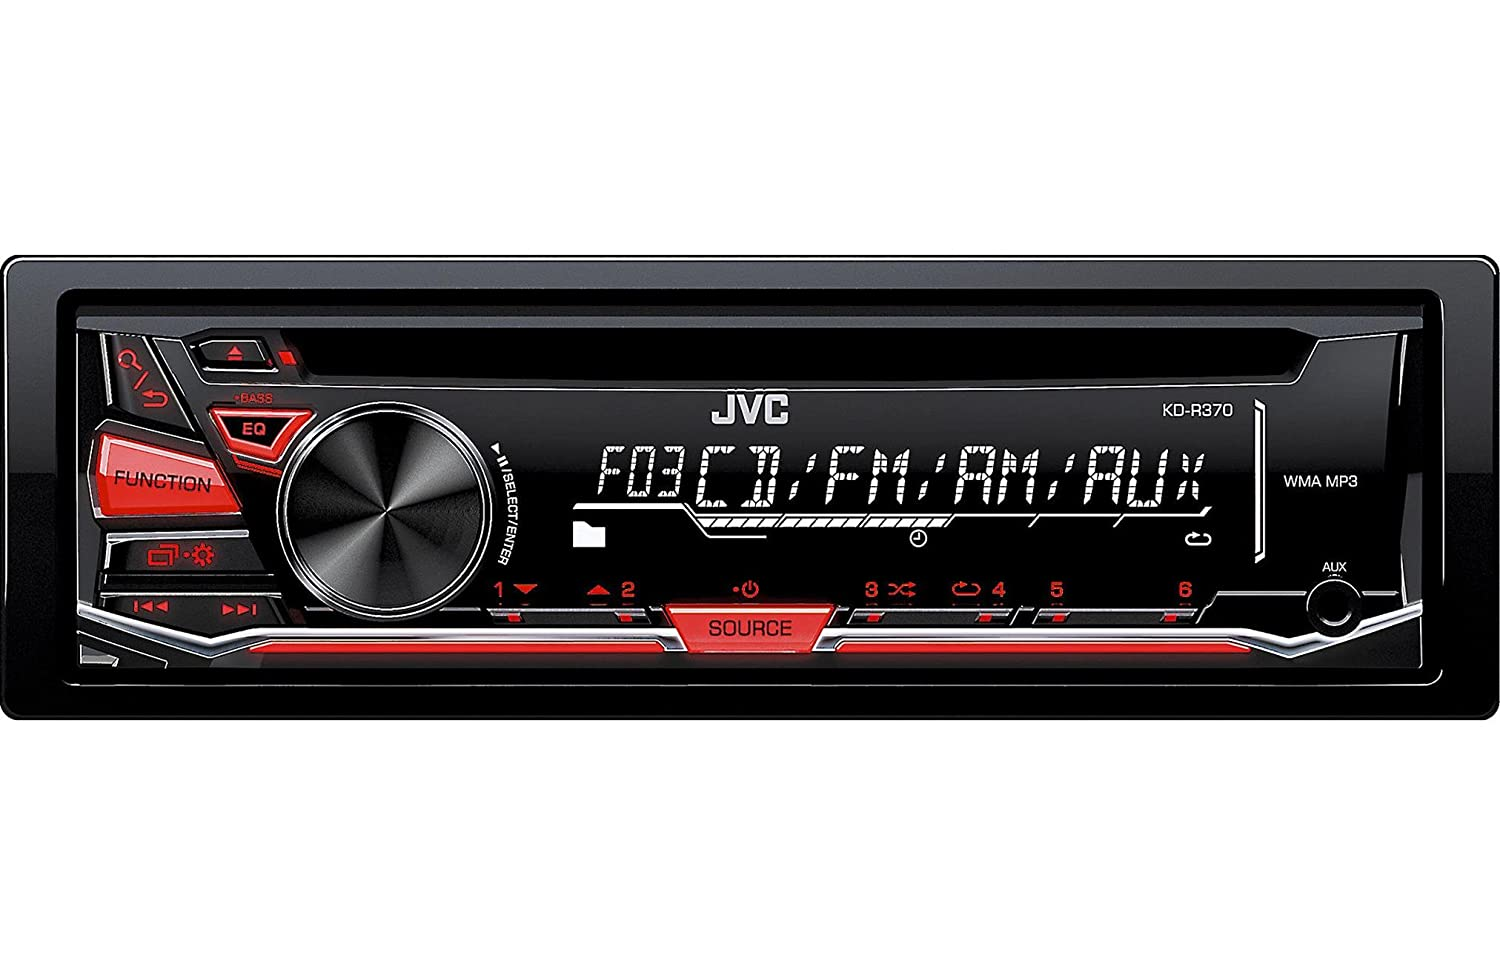 Amazon.com: JVC KD-R370 Single DIN in-Dash CD/AM/FM/Receiver with  Detachable Faceplate: Car Electronics